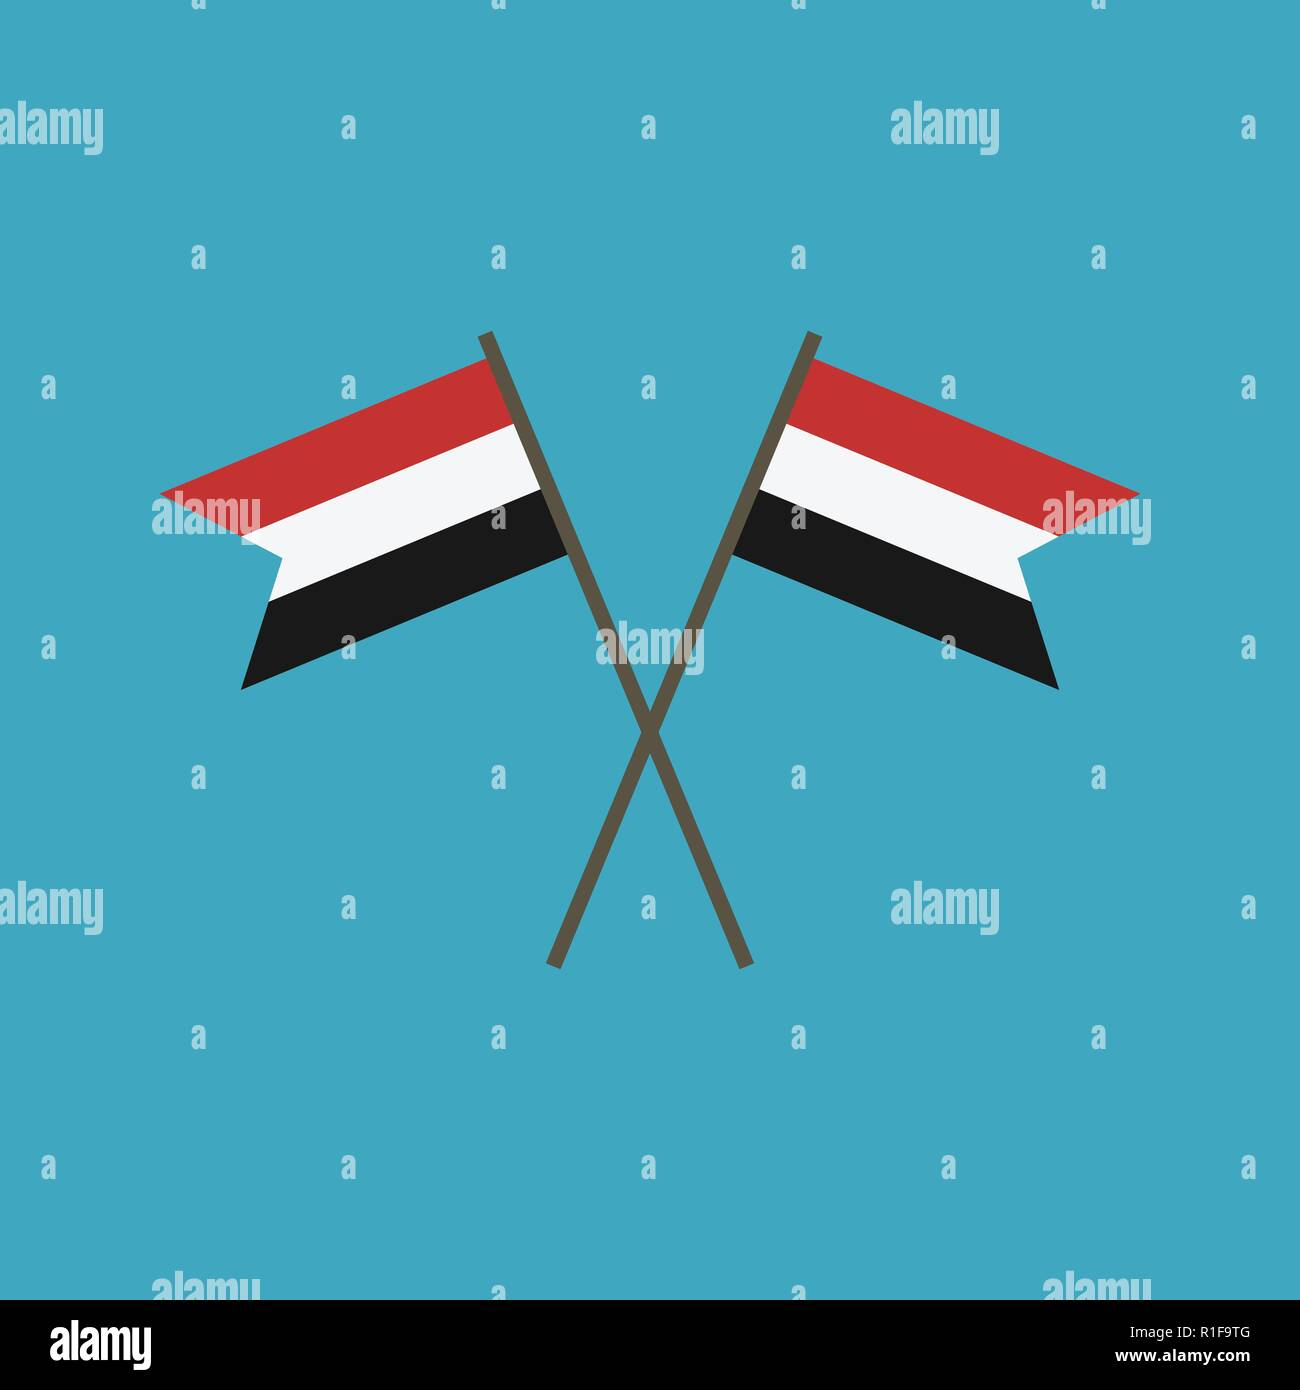 Yemen flag icon in flat design. Independence day or National day holiday concept. - Stock Vector